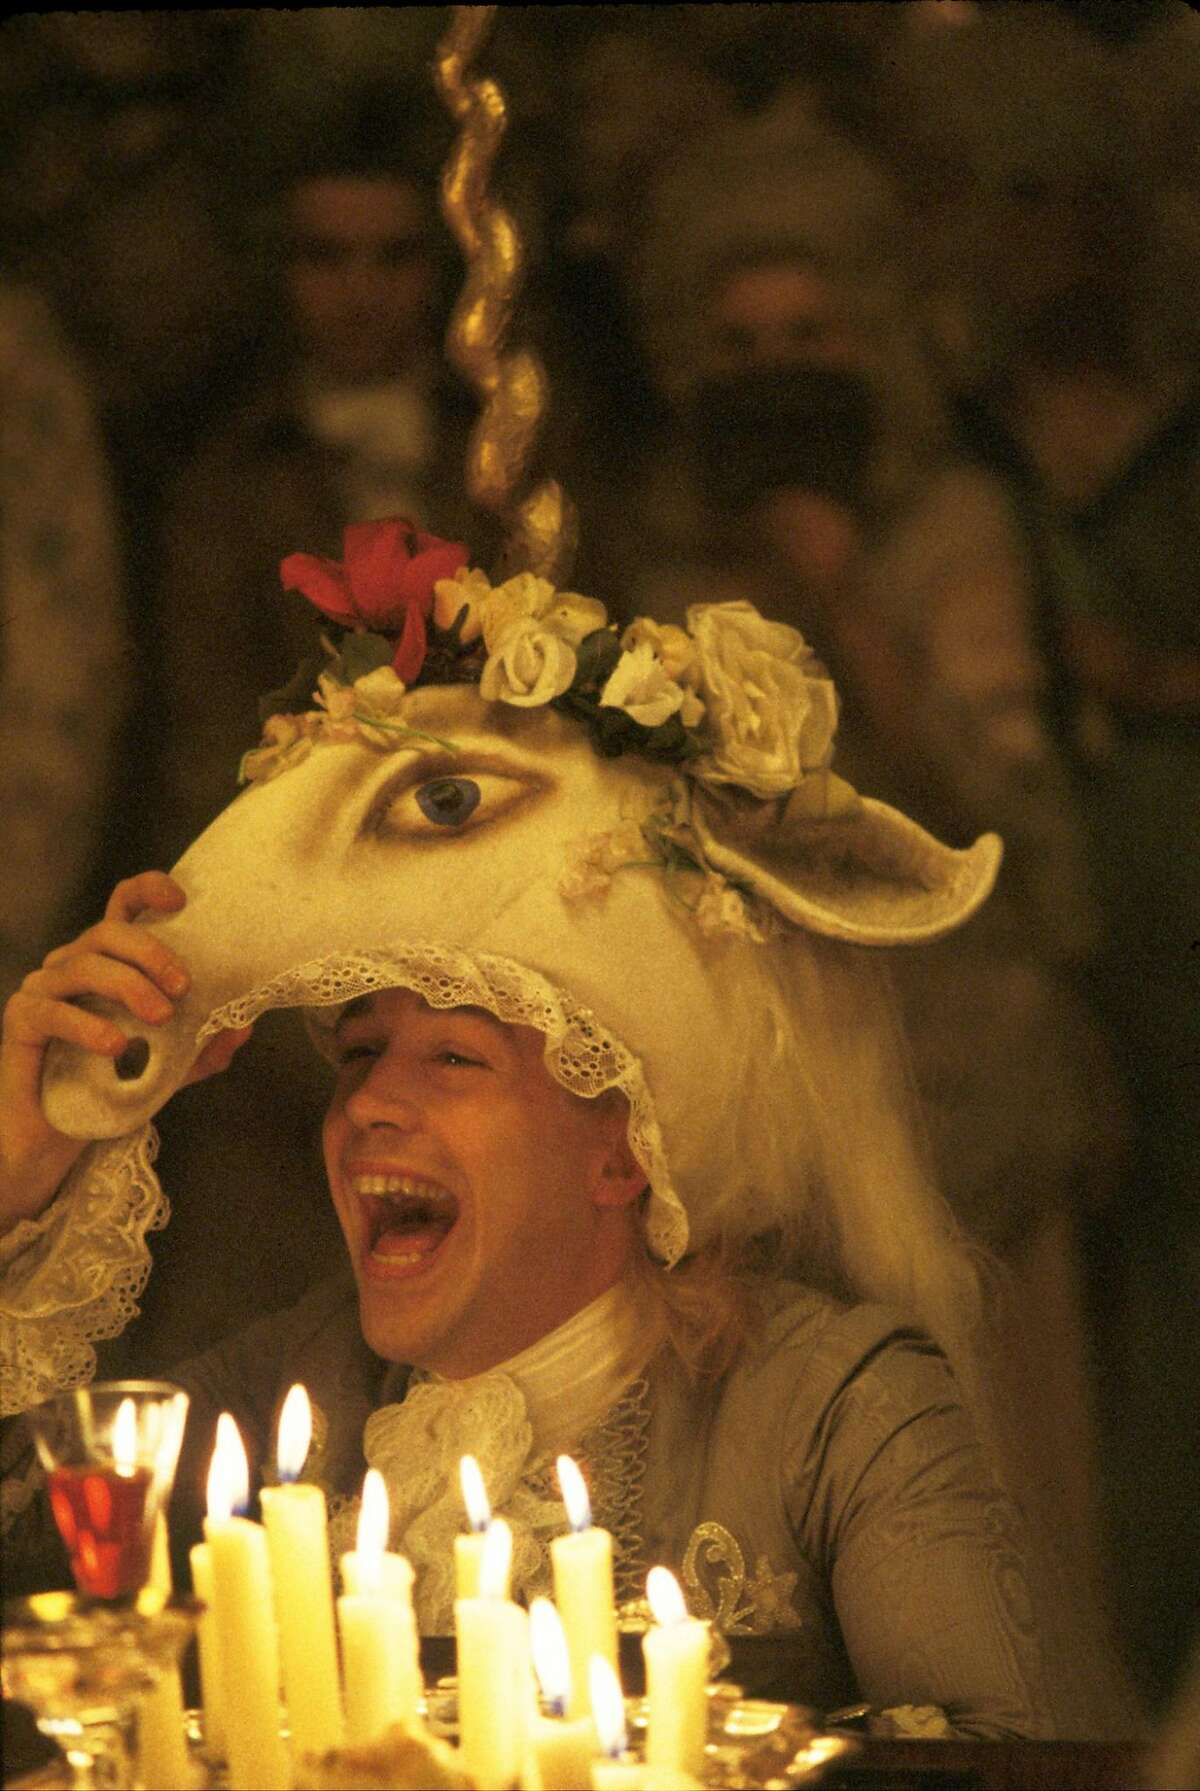 AMADEUS Director's Cut - Mozart (TOM HULCE) in The Saul Zaentz Company s presentation of Sir Peter Shaffer's Amadeus Director's Cut, directed by Milos Forman and distributed by Warner Bros. Pictures. Angelika films Amadeus